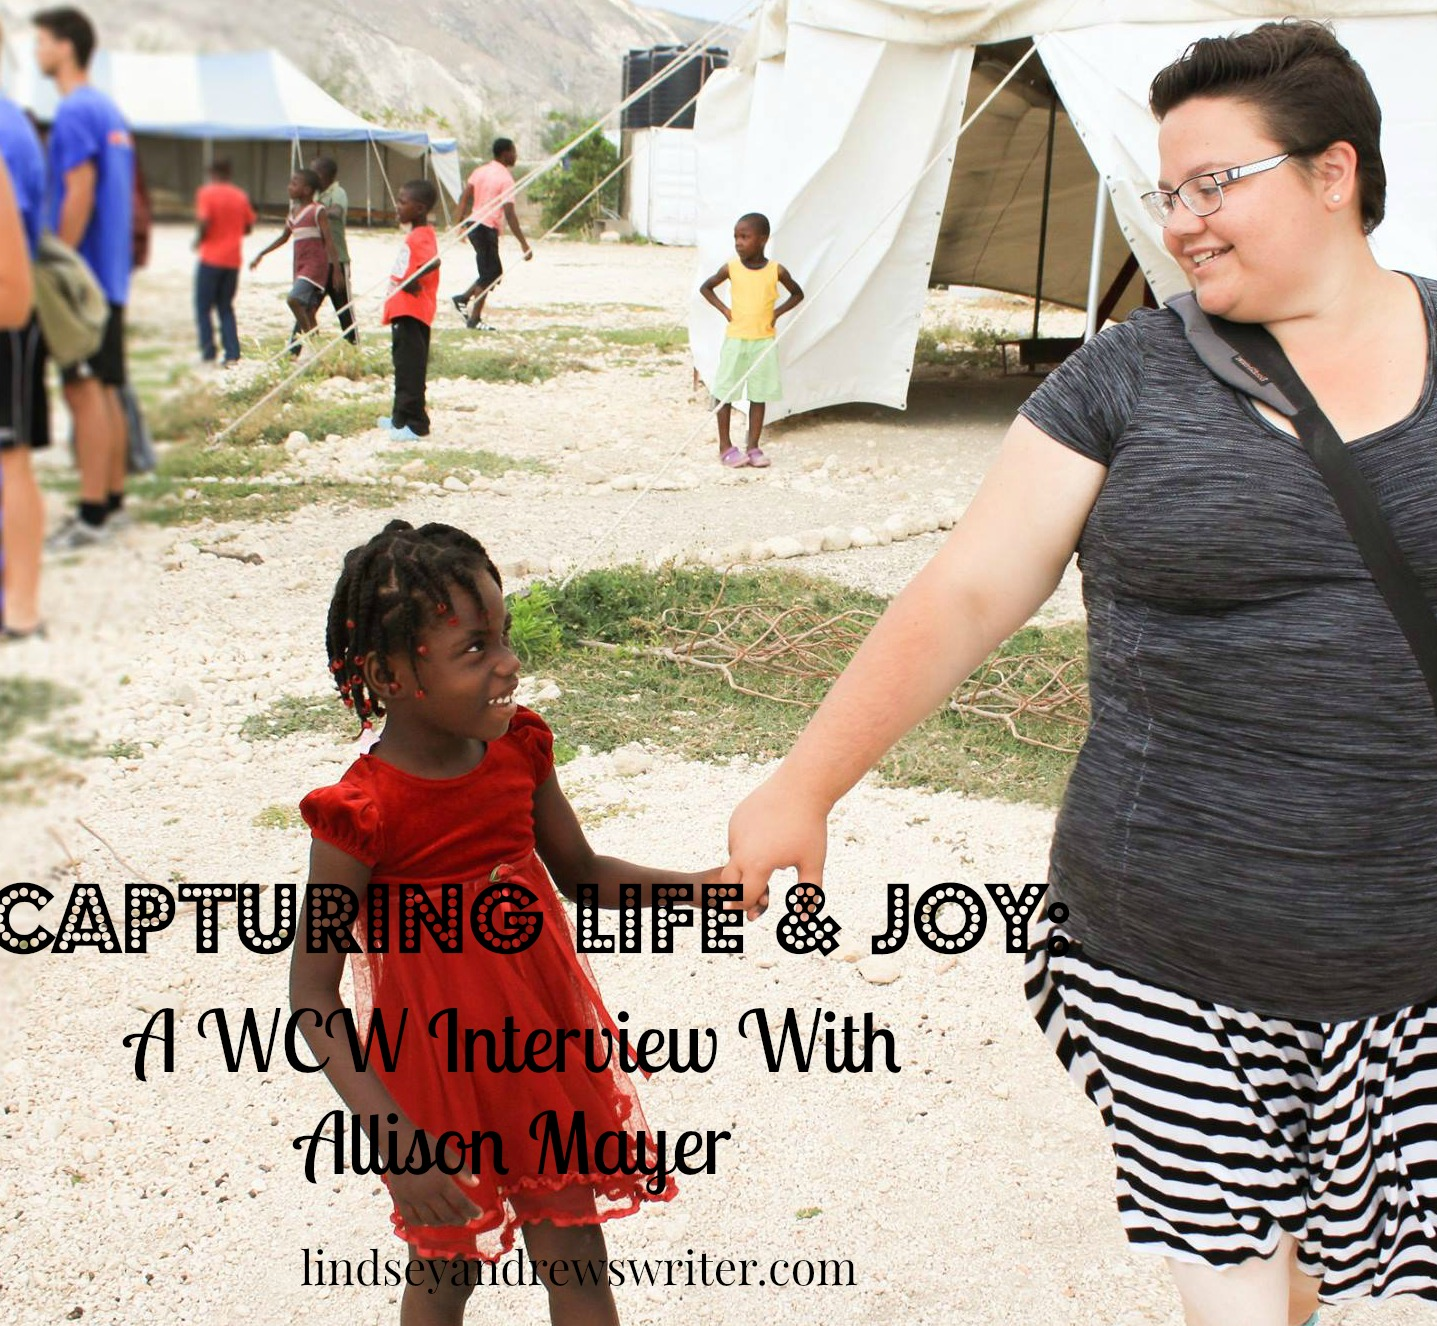 Capturing Life & Joy: Meet Allison Mayer